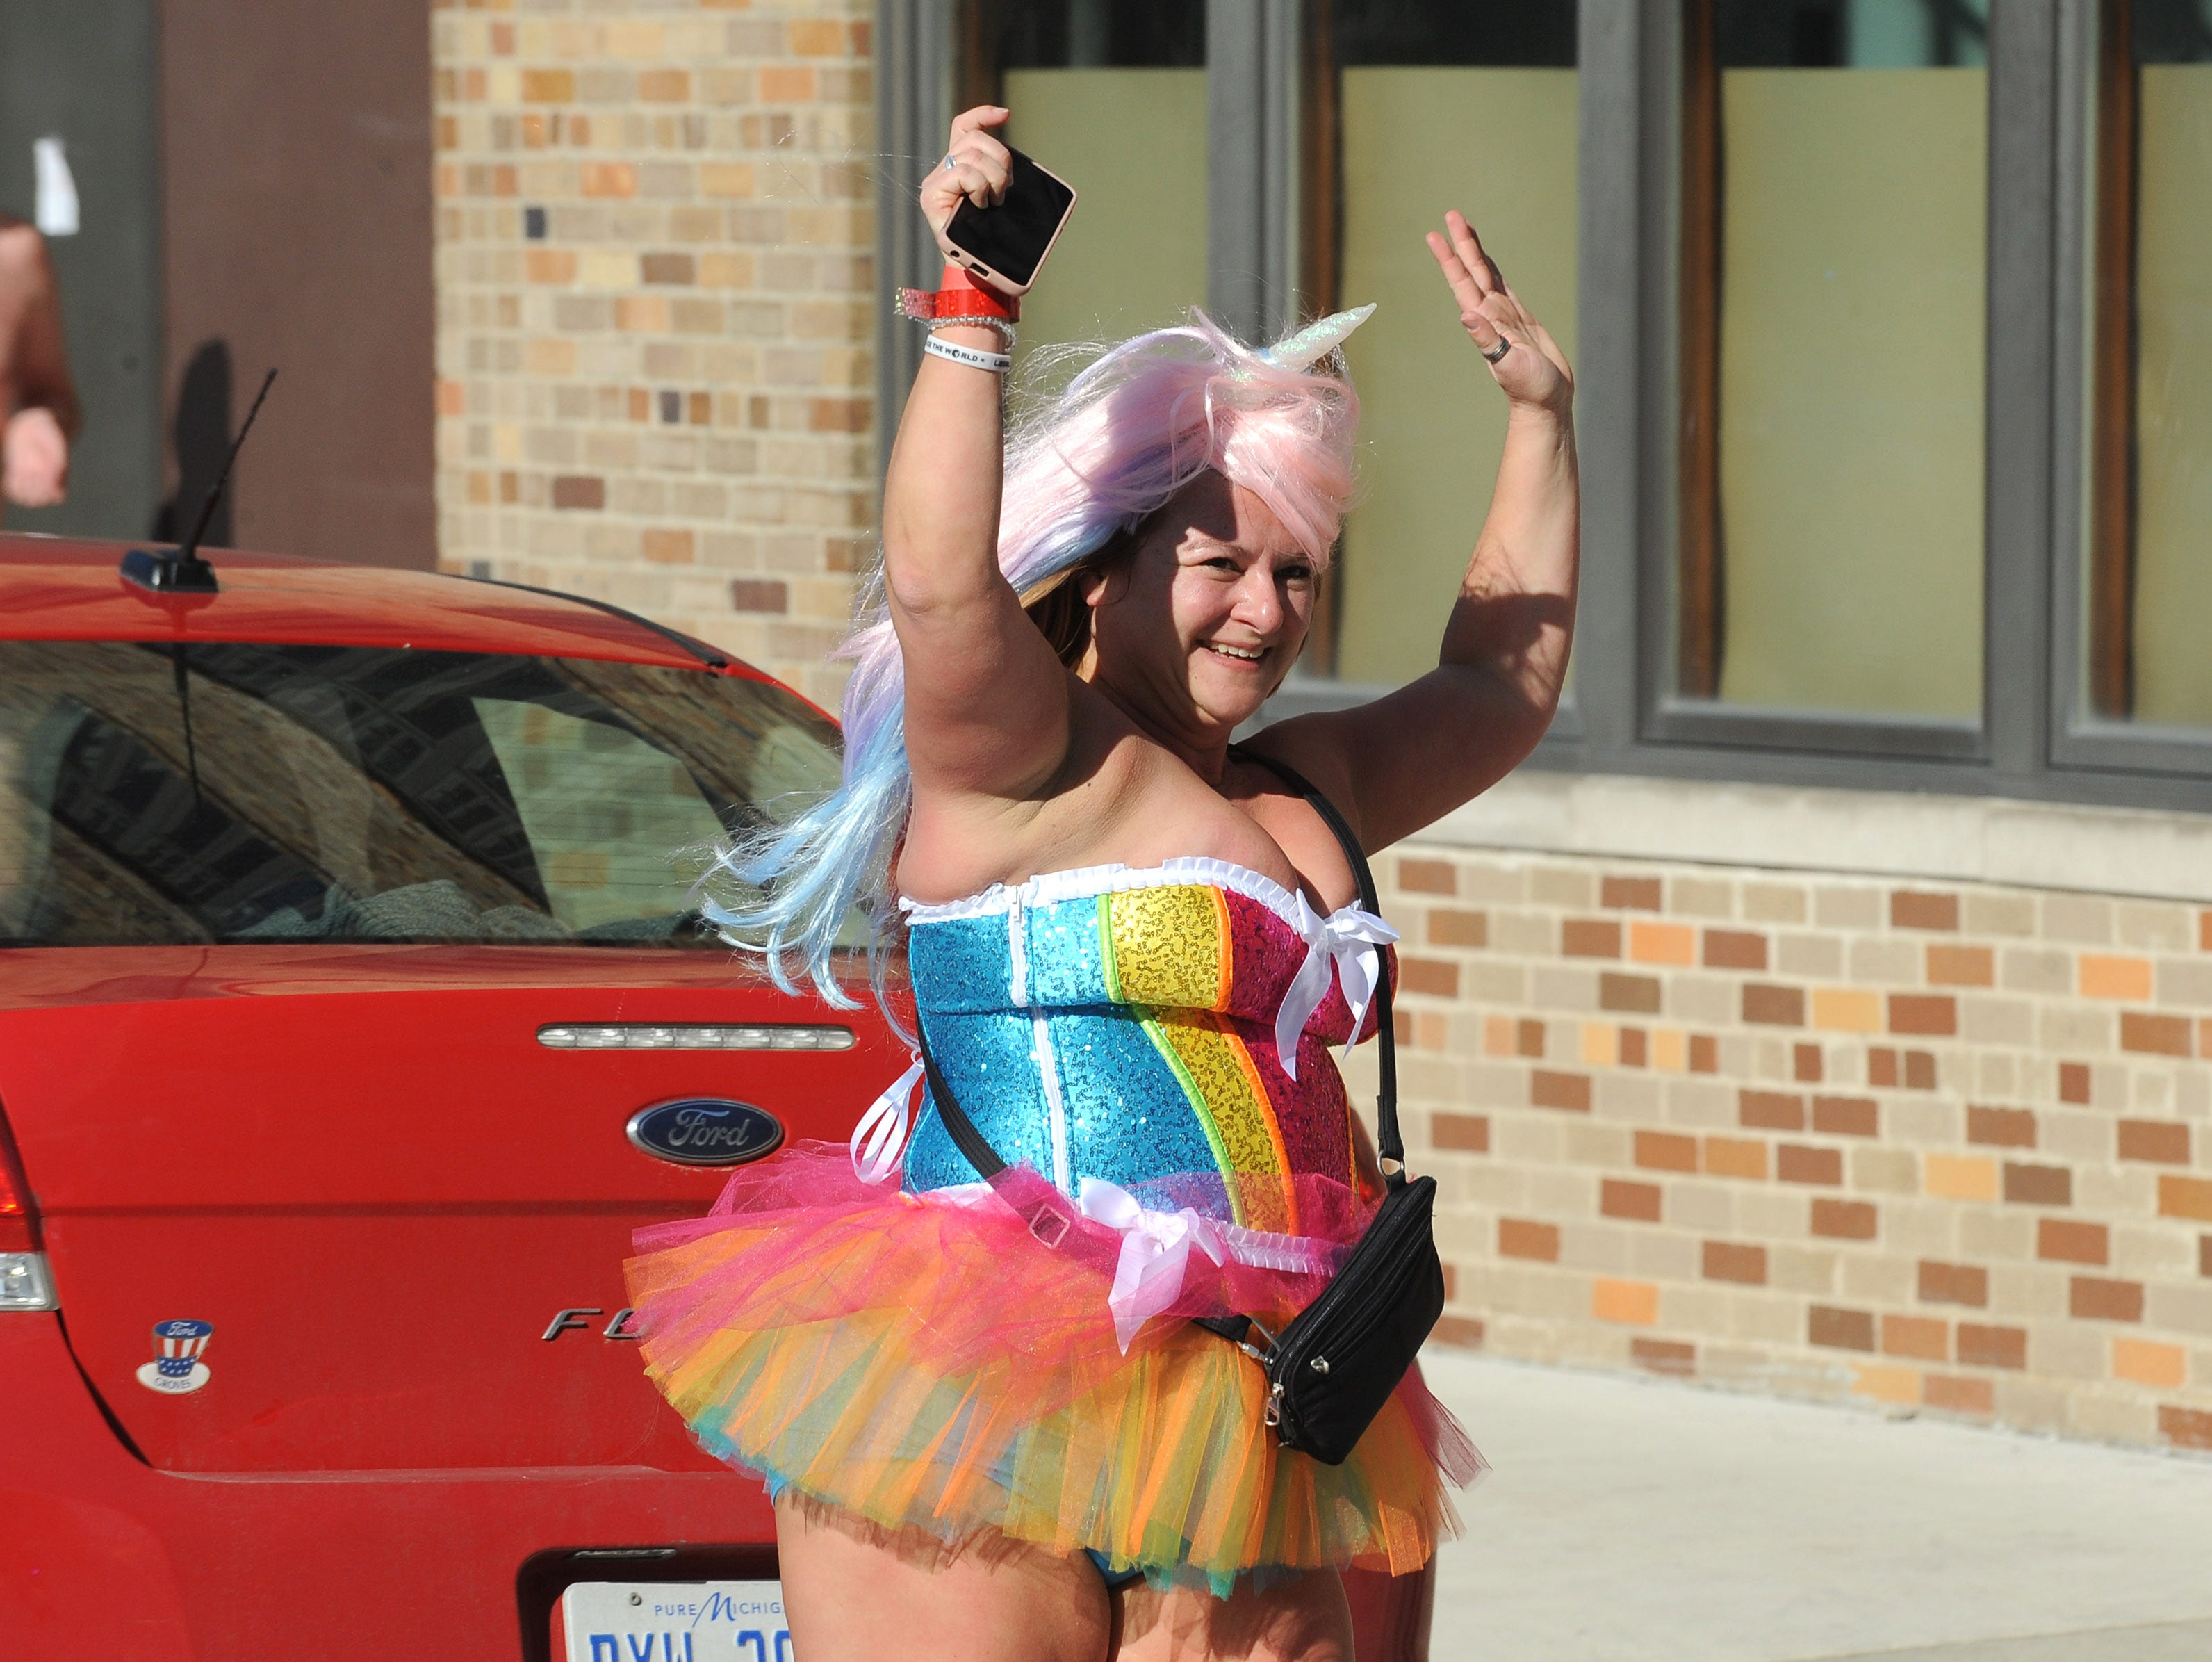 A participant wore multicolored skirt and ran Cupid's Undie Run.